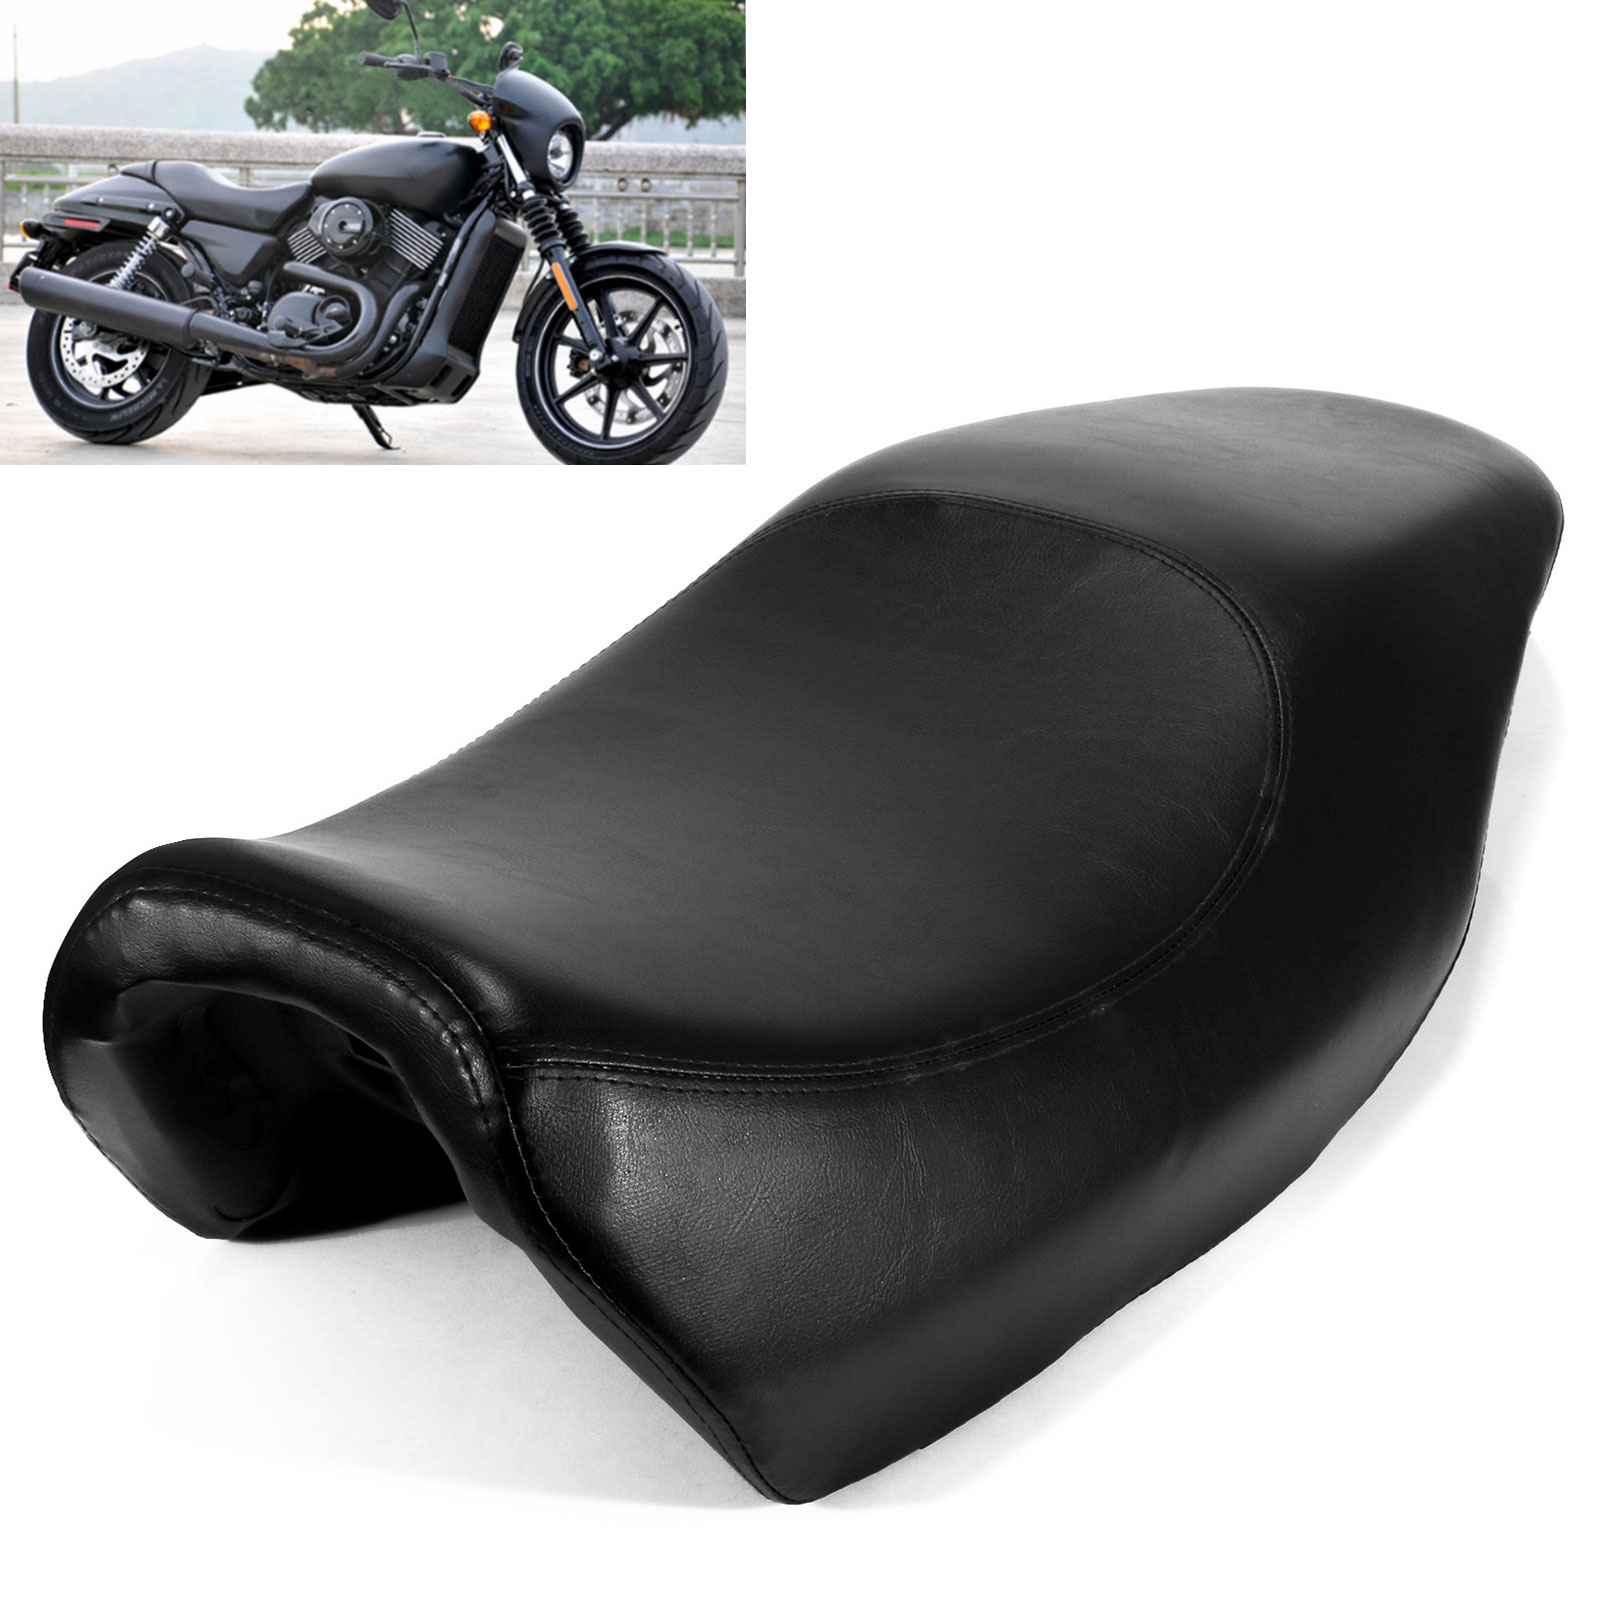 High Quality Motorcycle Two Up Driver Front Rear Passenger Seat Cushions For Harley Davidson Street 750 500